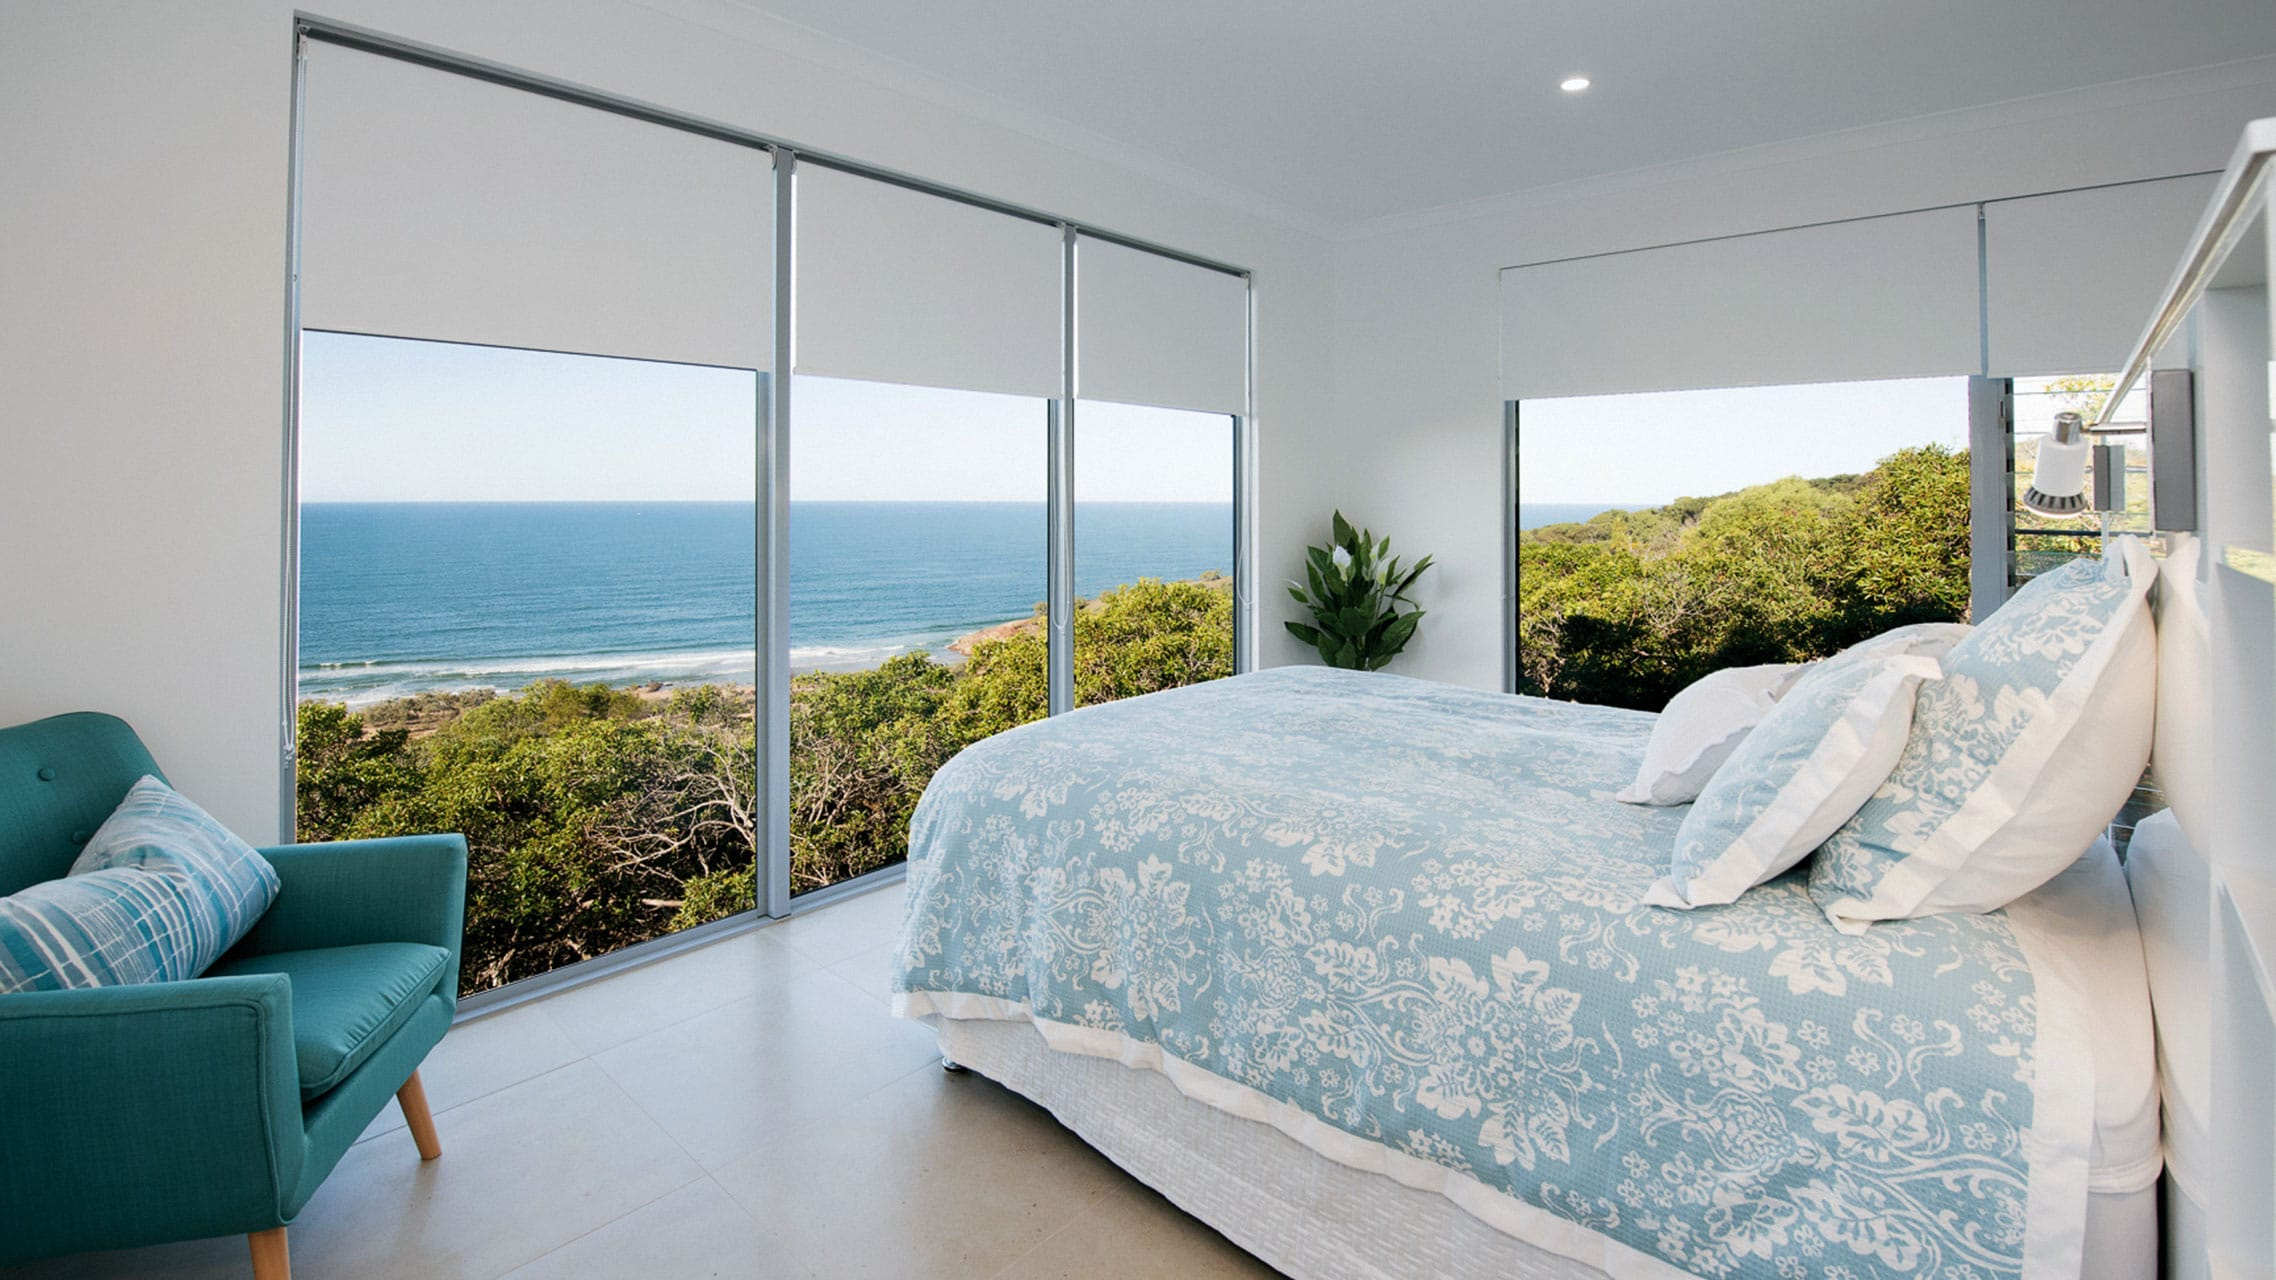 Large Fixed Windows in a bedroom